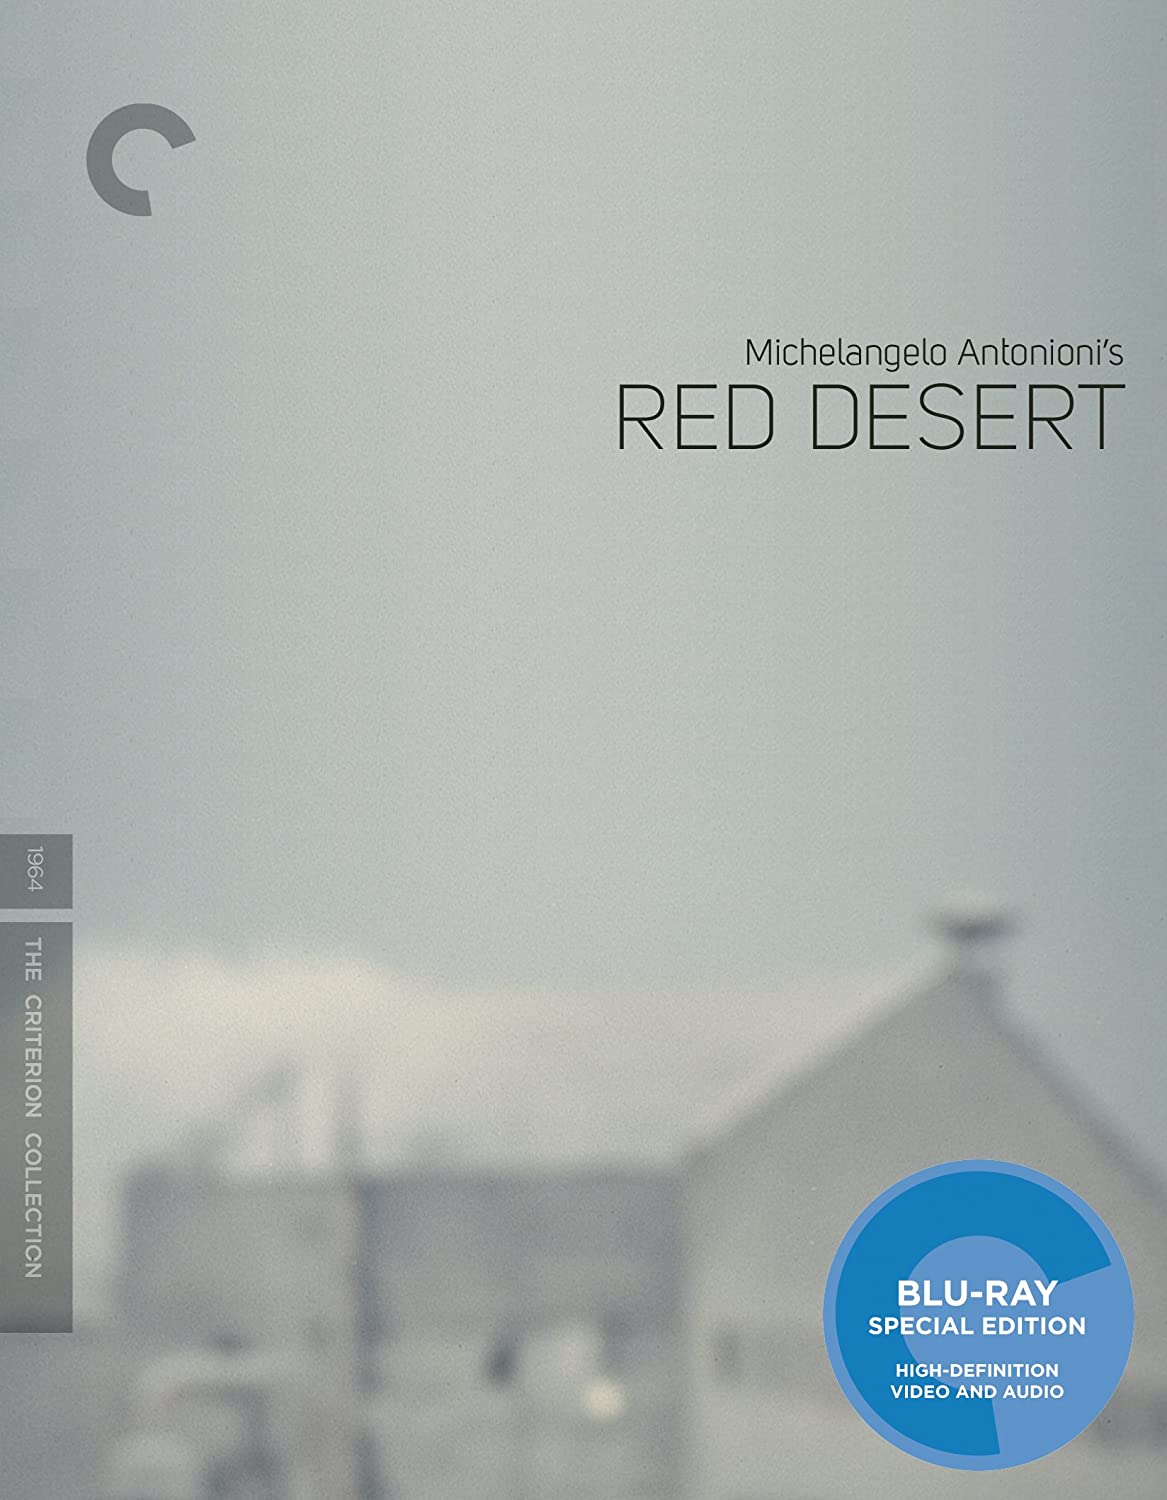 Red Desert (Criterion Collection) [Blu-ray] Richard Harris Monica Vitti Michelangelo Antonioni 7380093